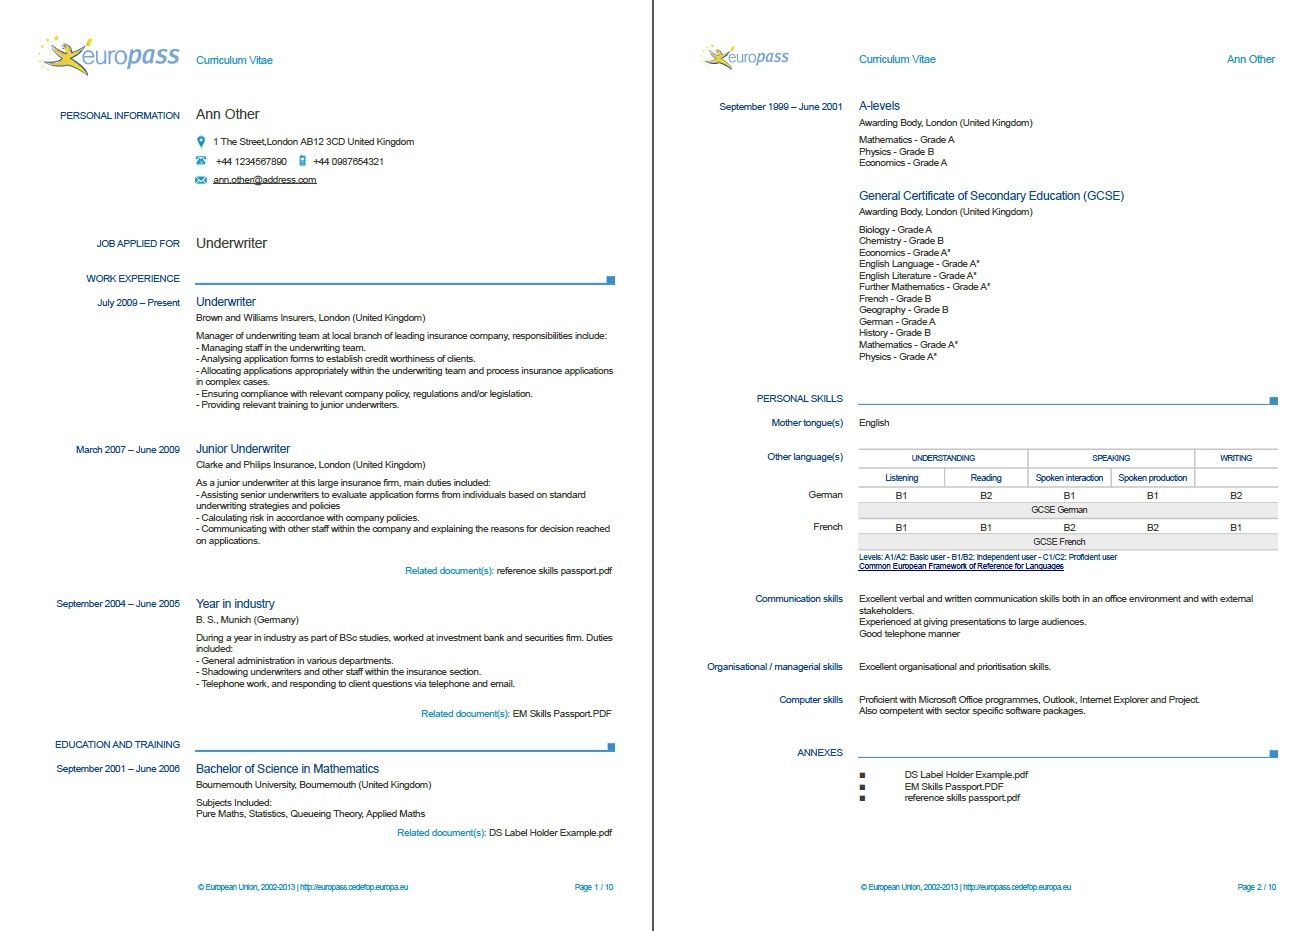 example of a europass cv  more examples       europass